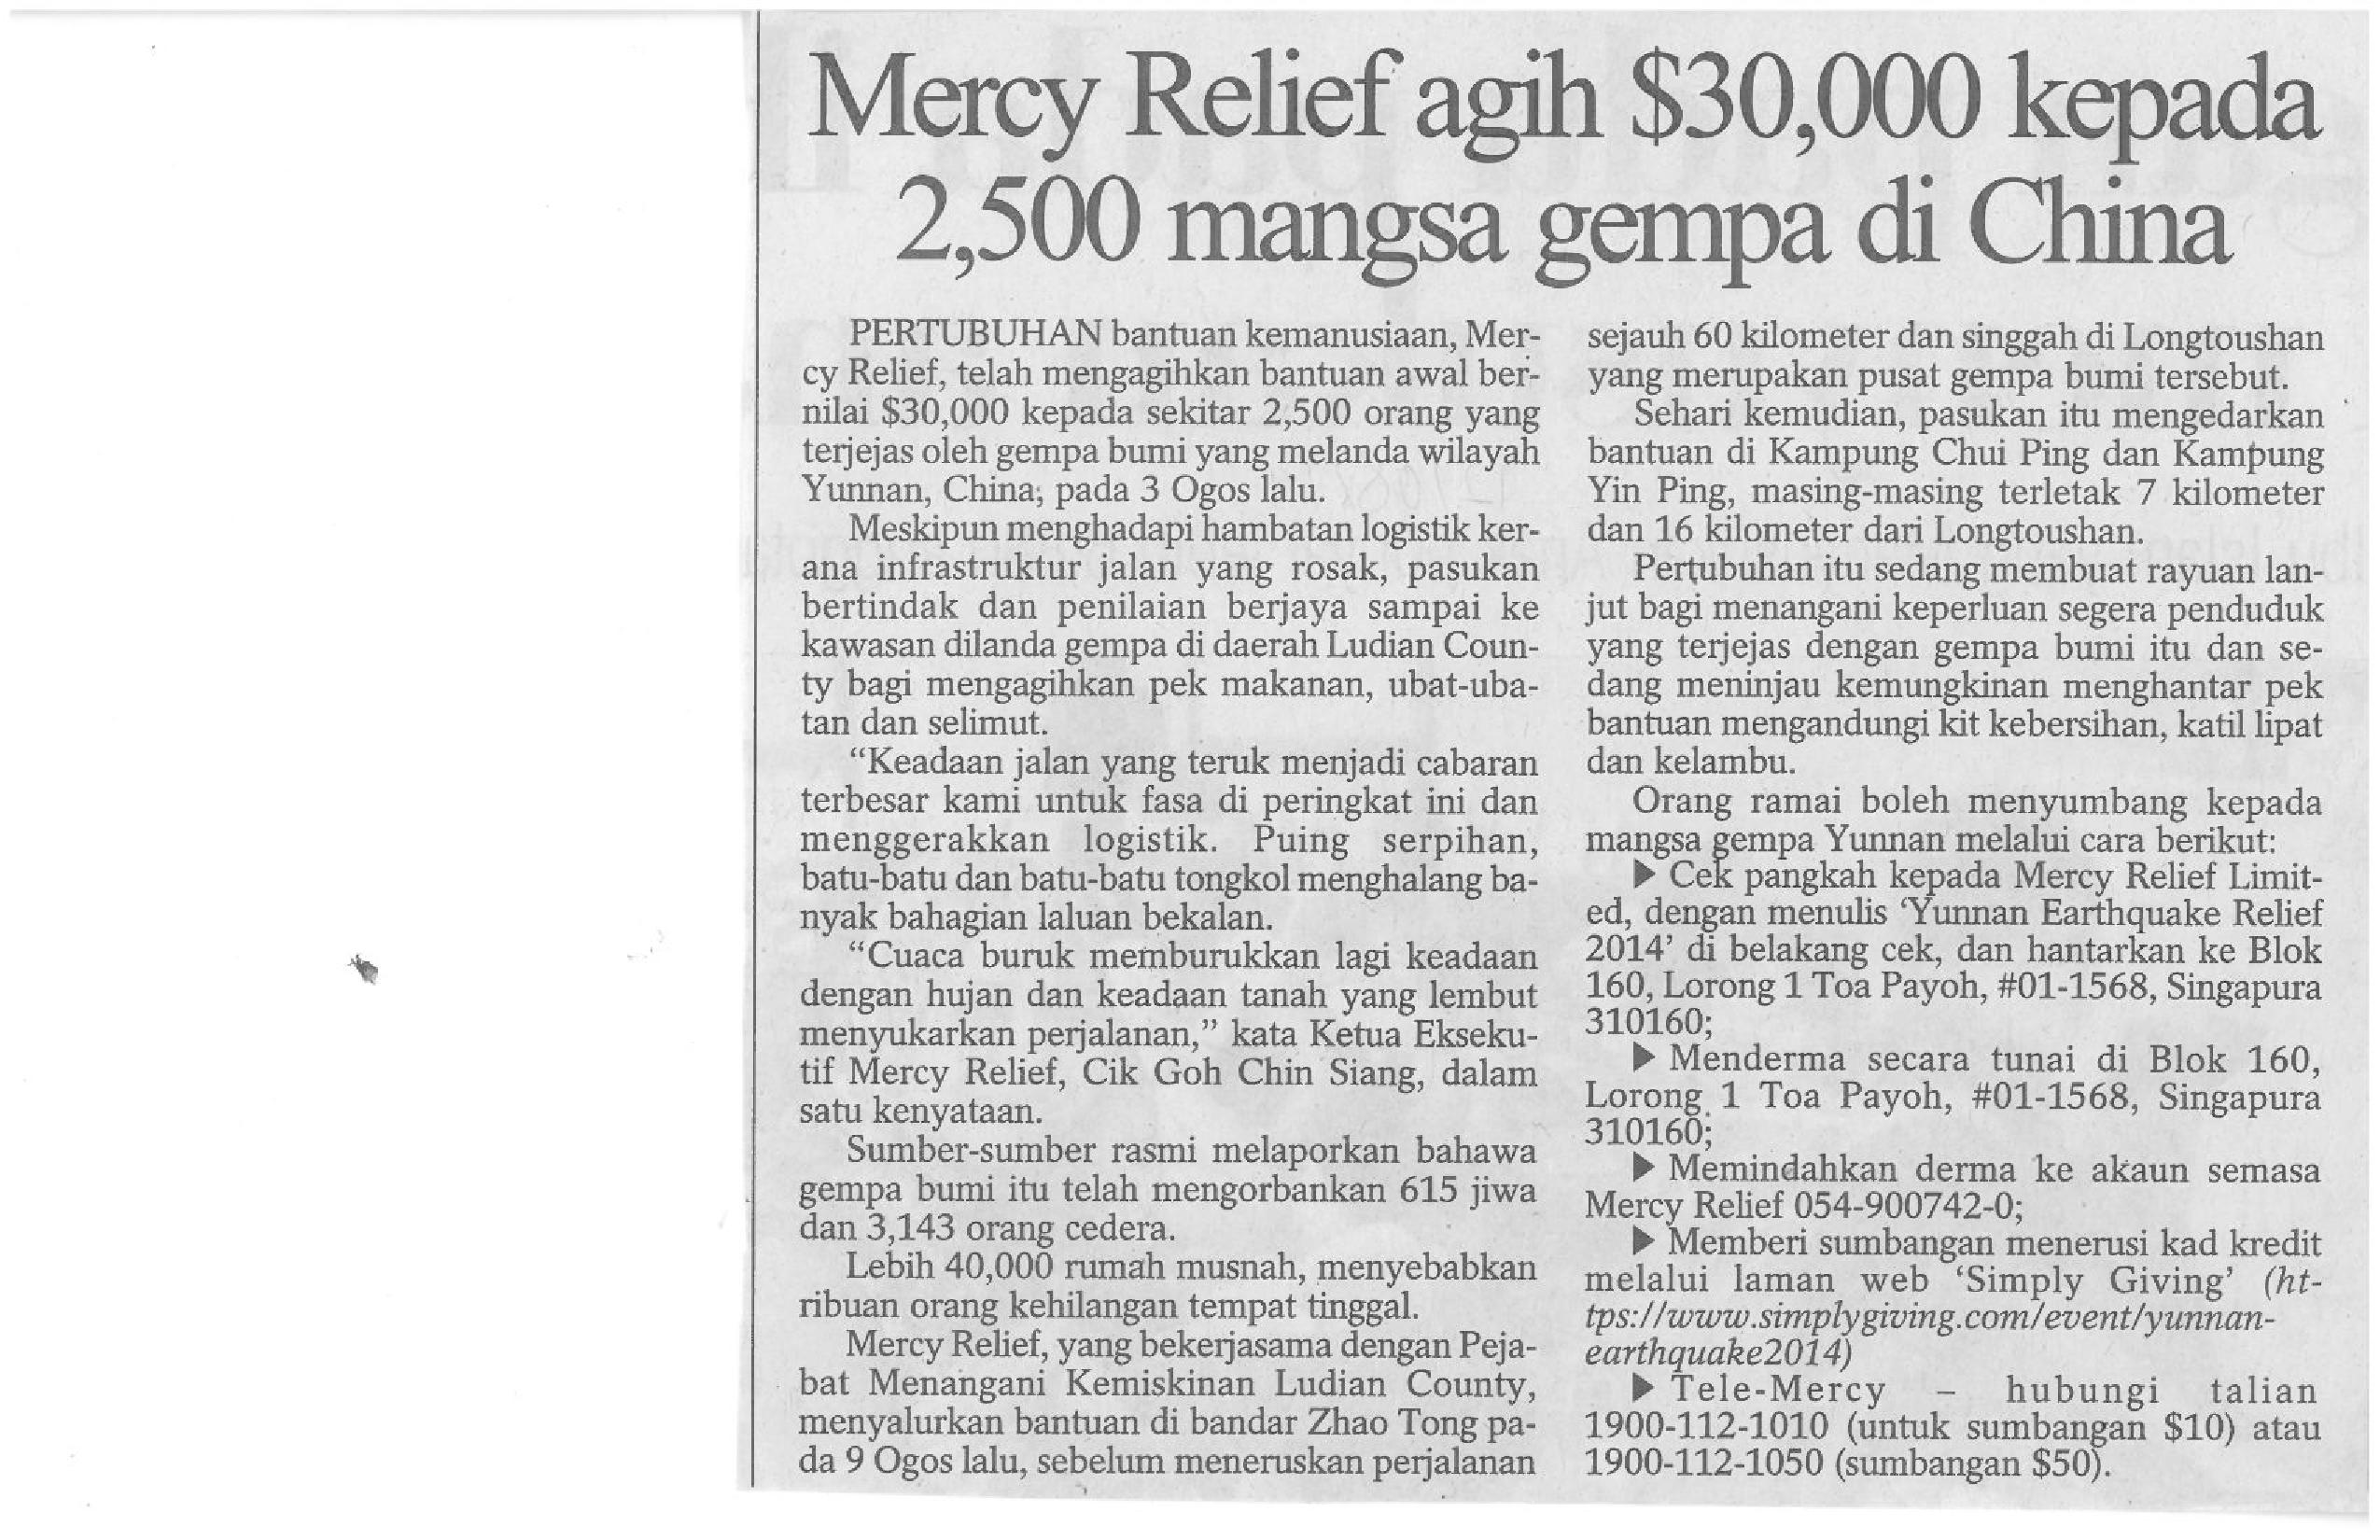 12082014_BH_Mercy Relief Disburses $30,000 to 2500 Earthquake Victims in China-page-001